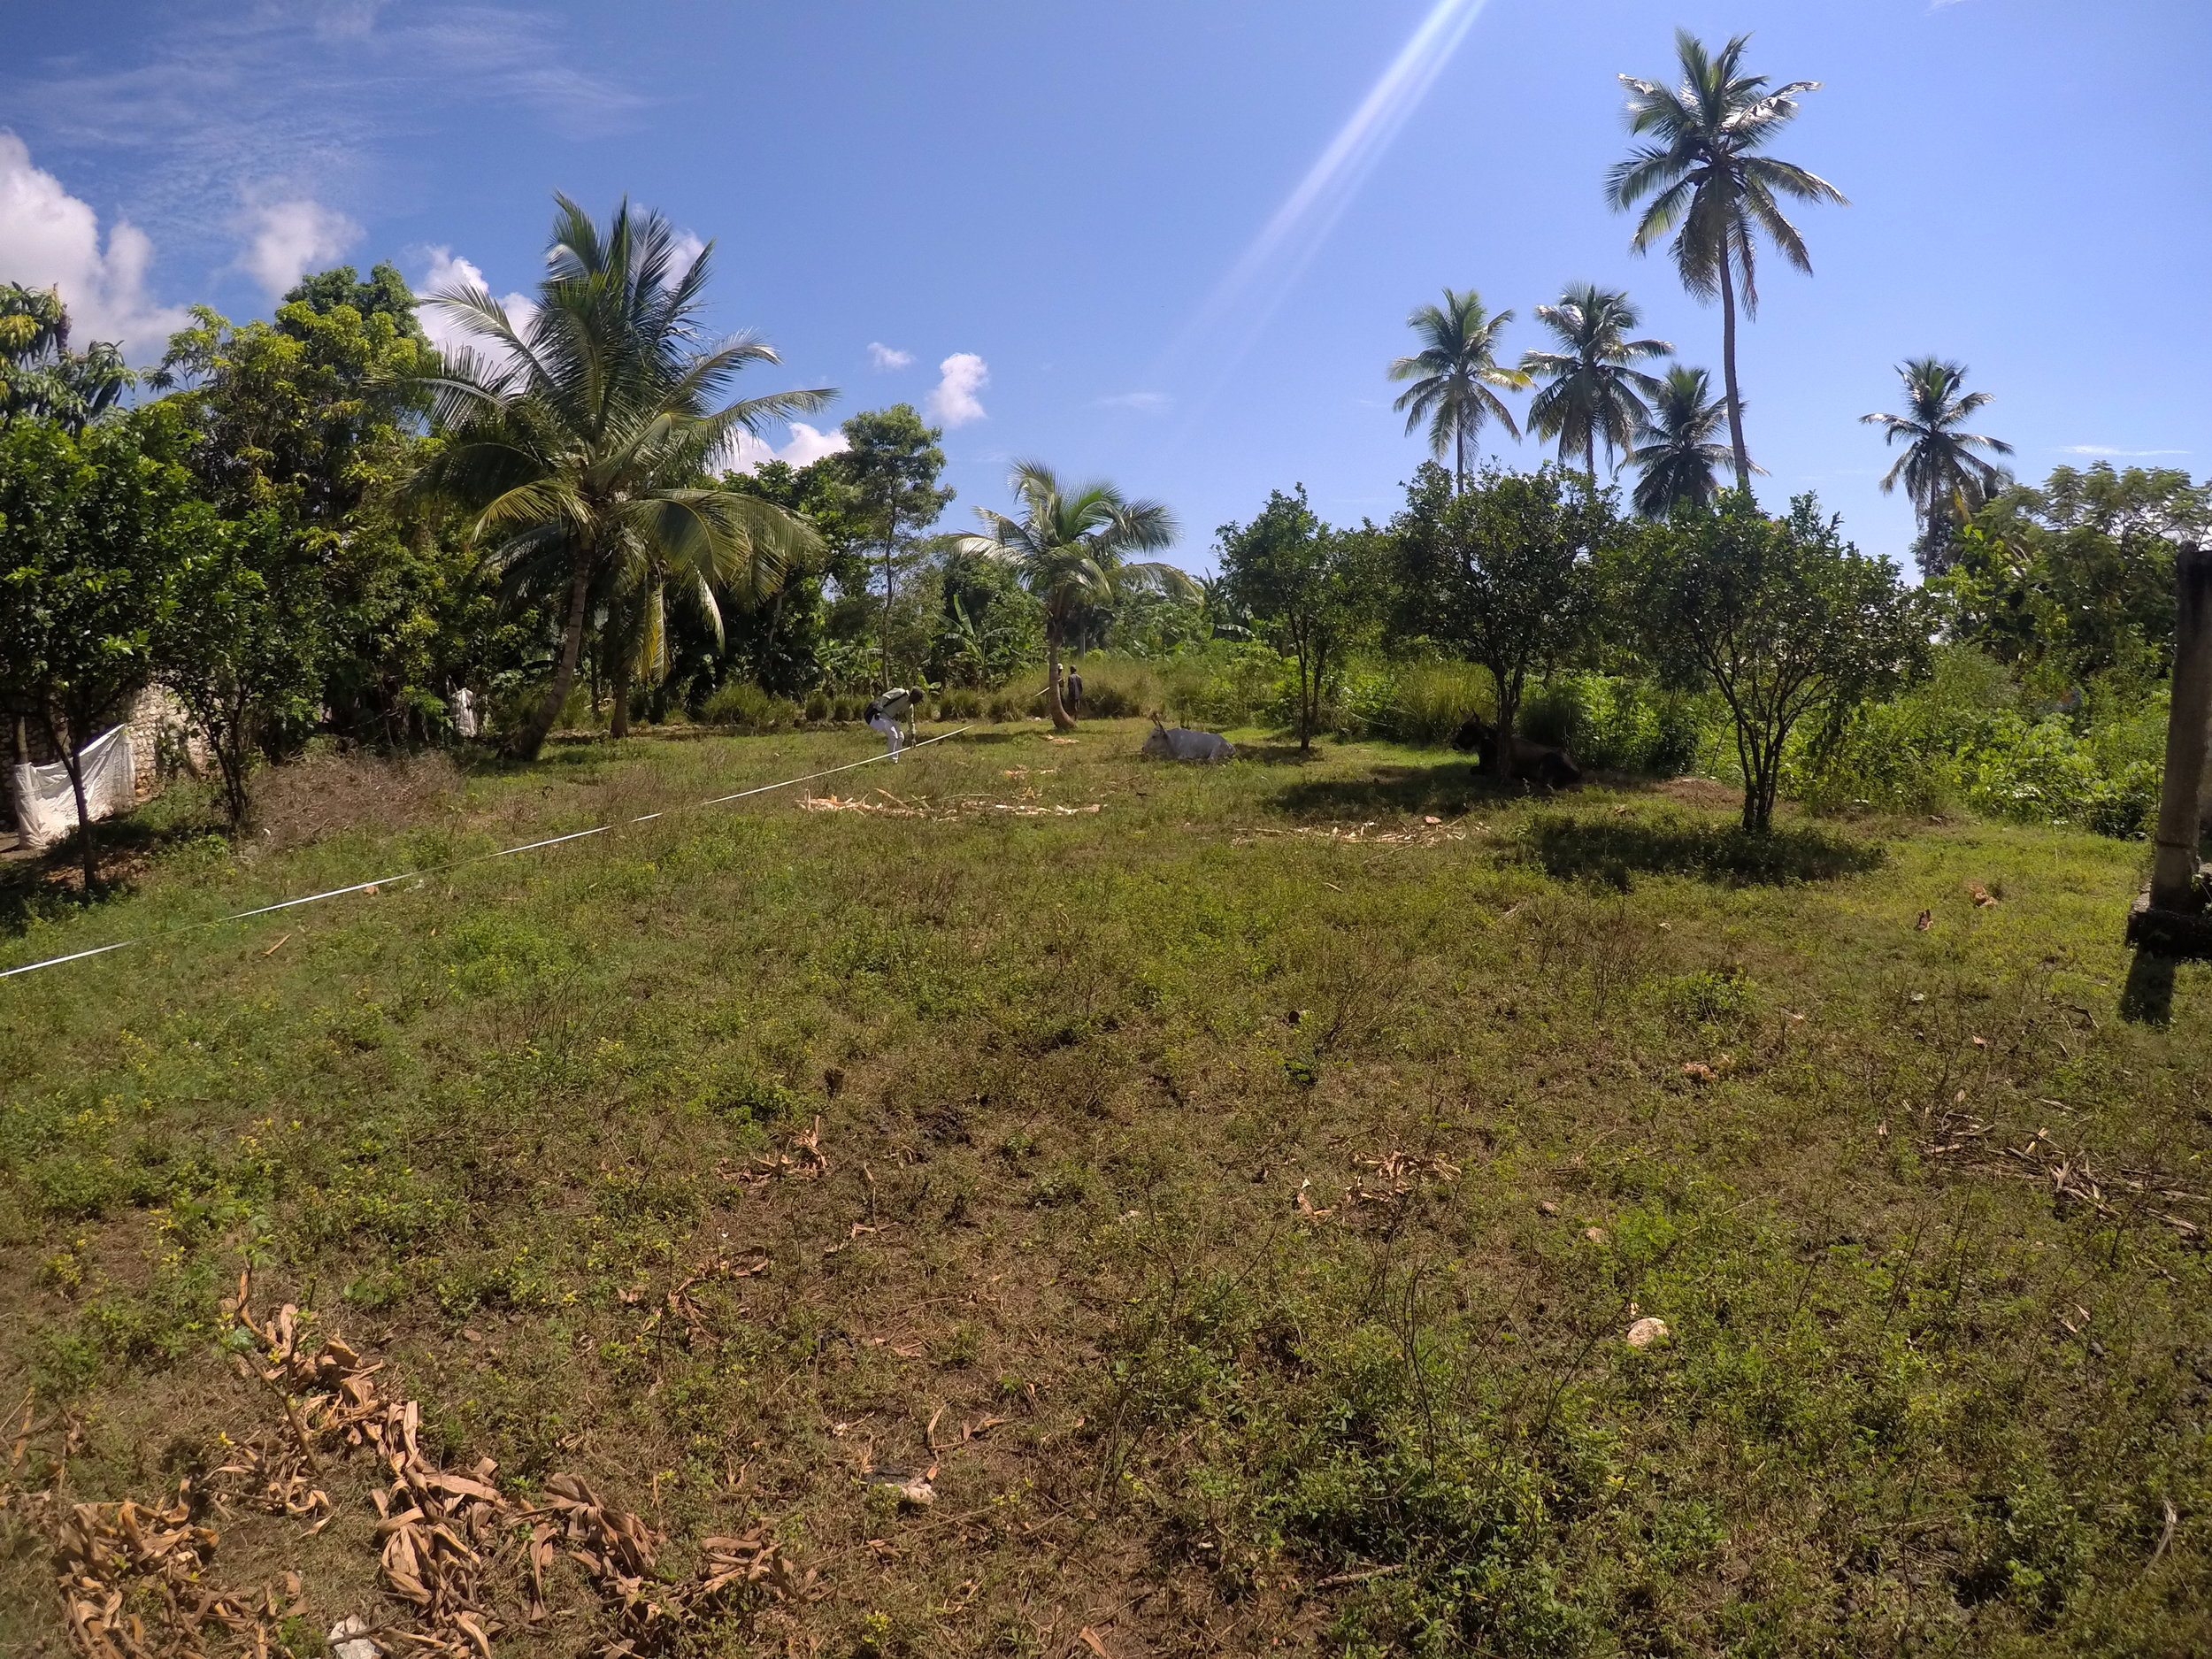 The Haitian contractors measured the perimeter of our land this week as they prepare to build the security enclosure. One day, this will be the view from our safe house!